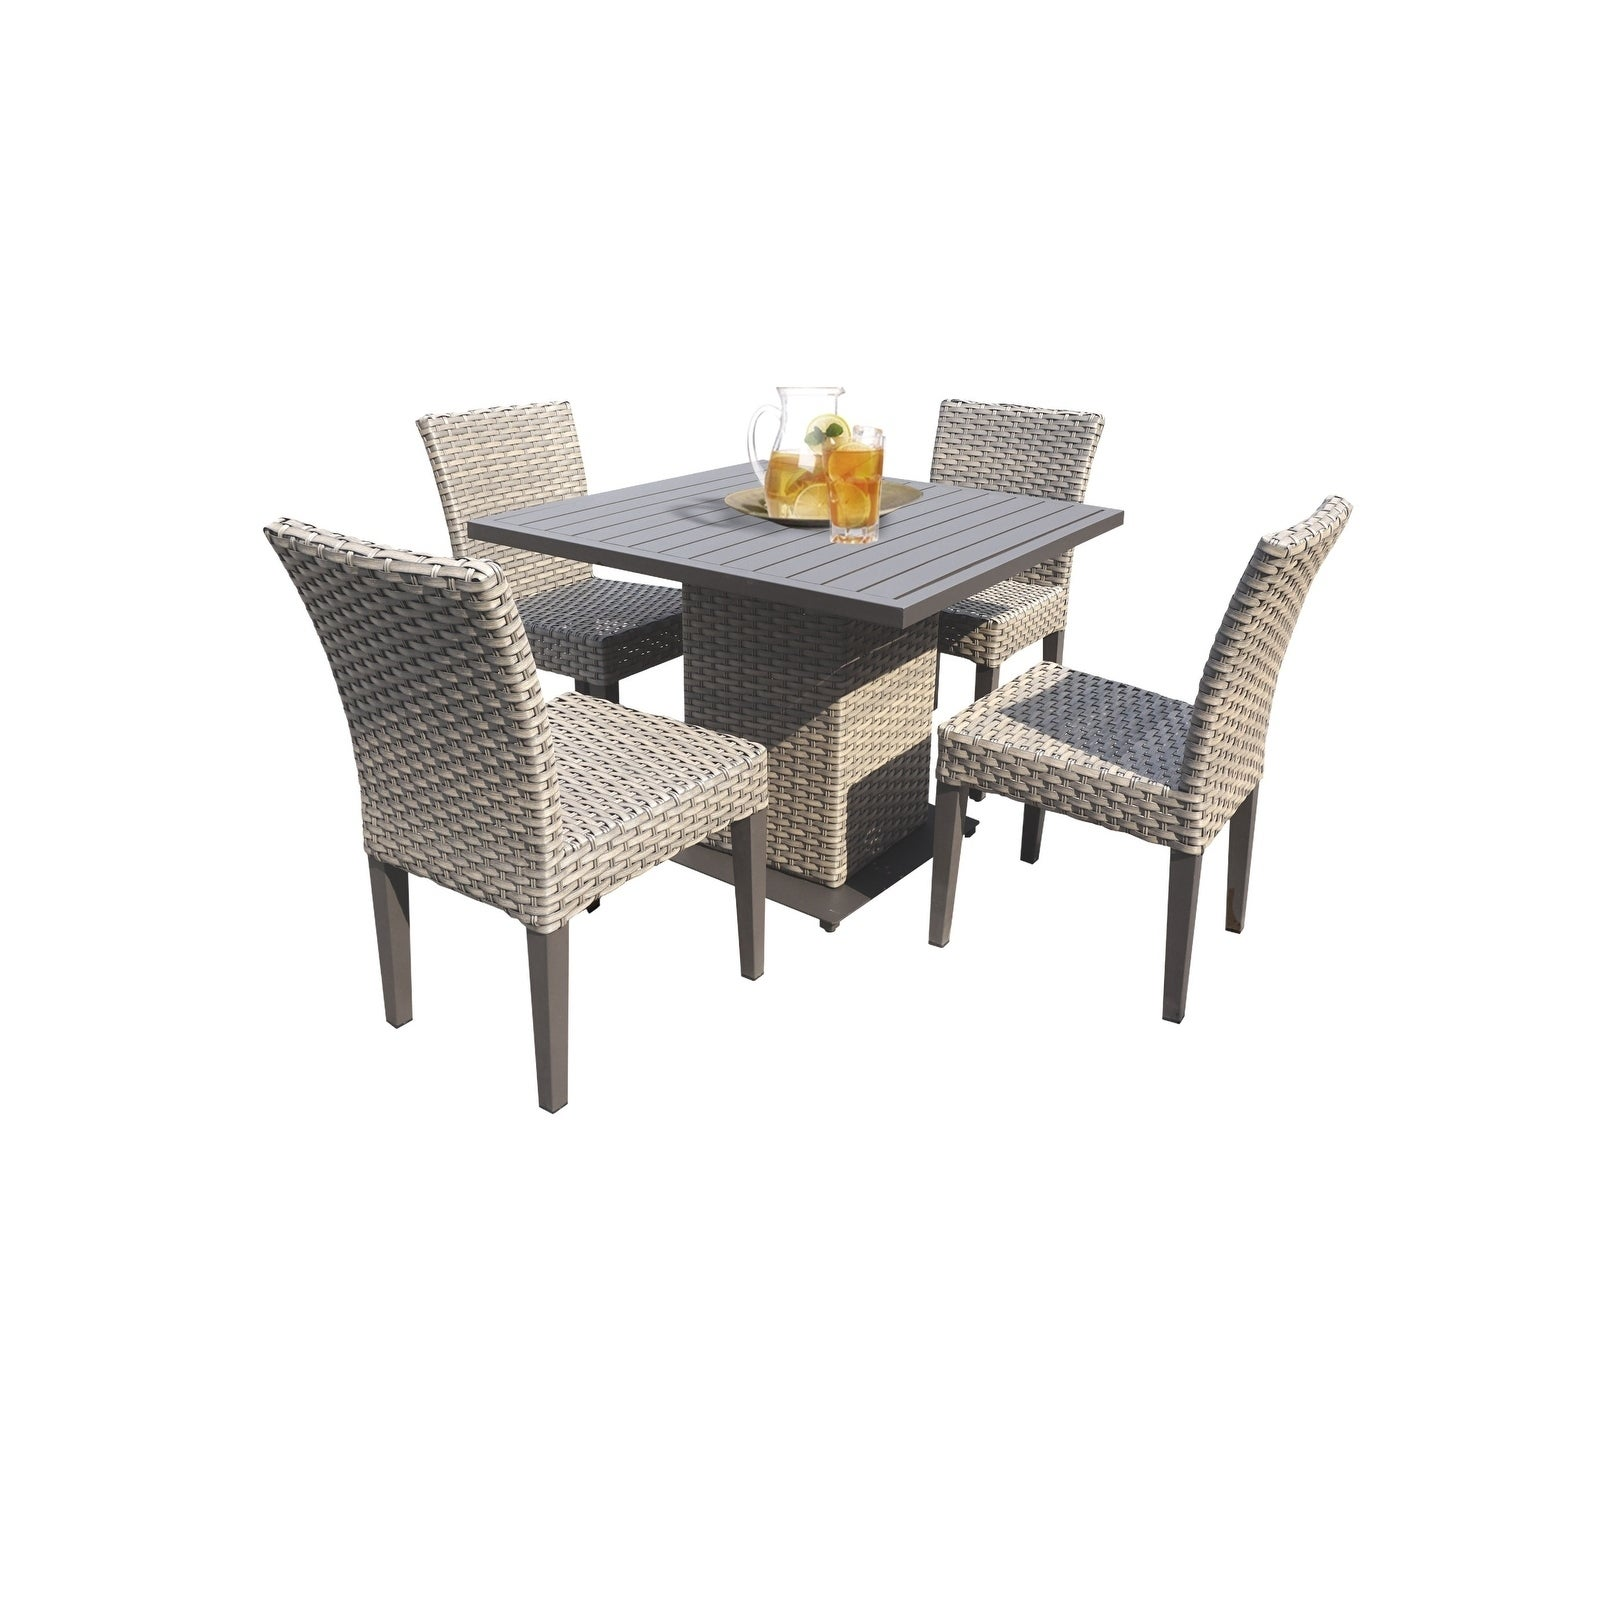 Florence Square Dining Table With 4 Chairs Free Shipping Today 25558426